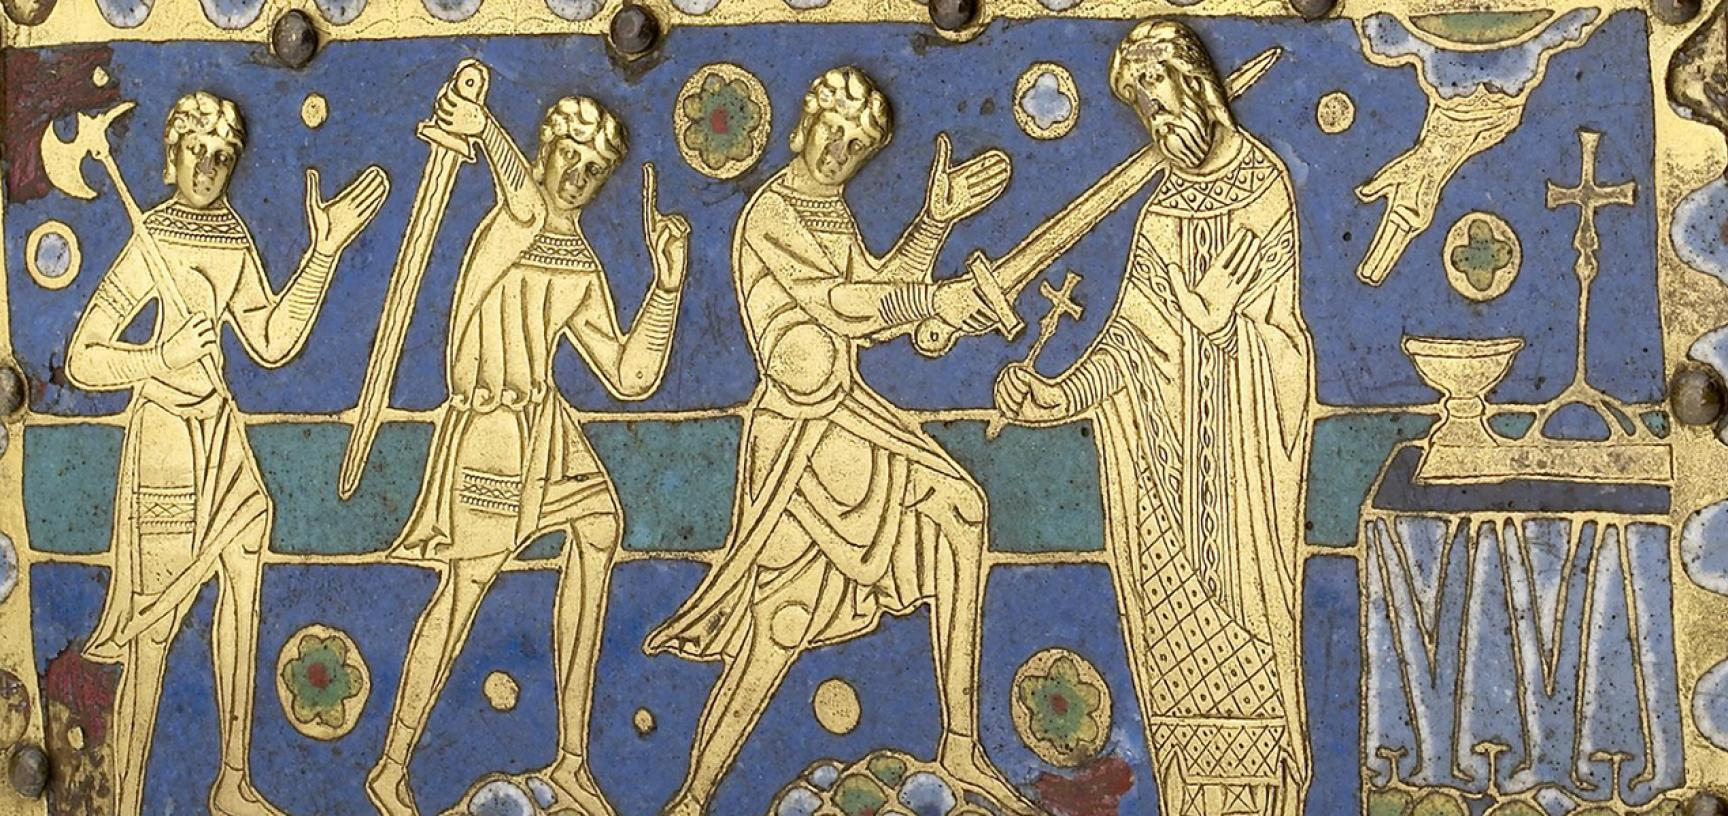 RELIQUARY CASKET OF ST THOMAS BECKET (detail) from the Ashmolean collections